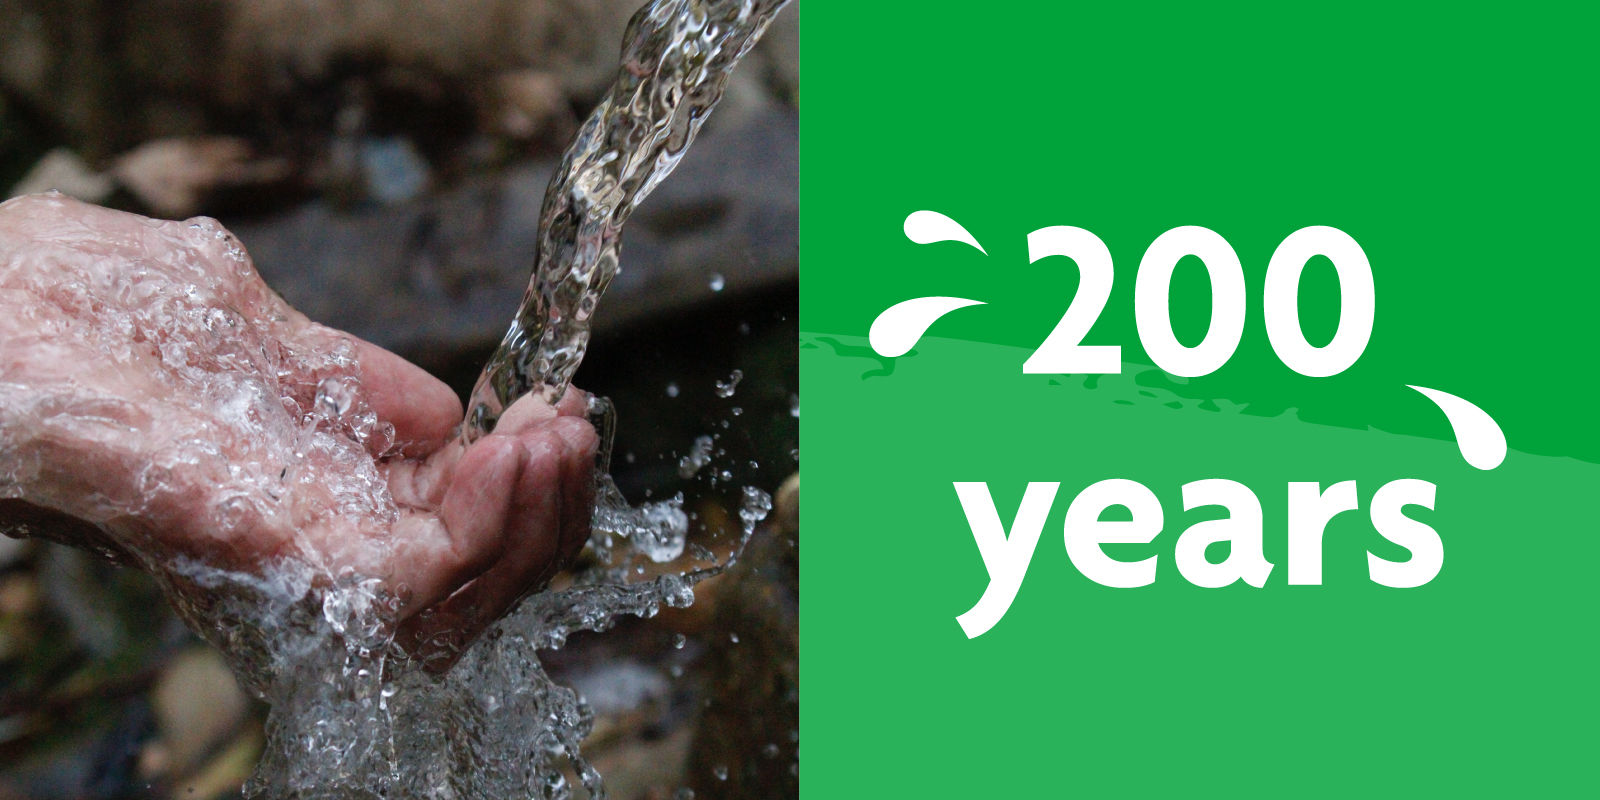 Timeline Year: 1740 with some water splashes